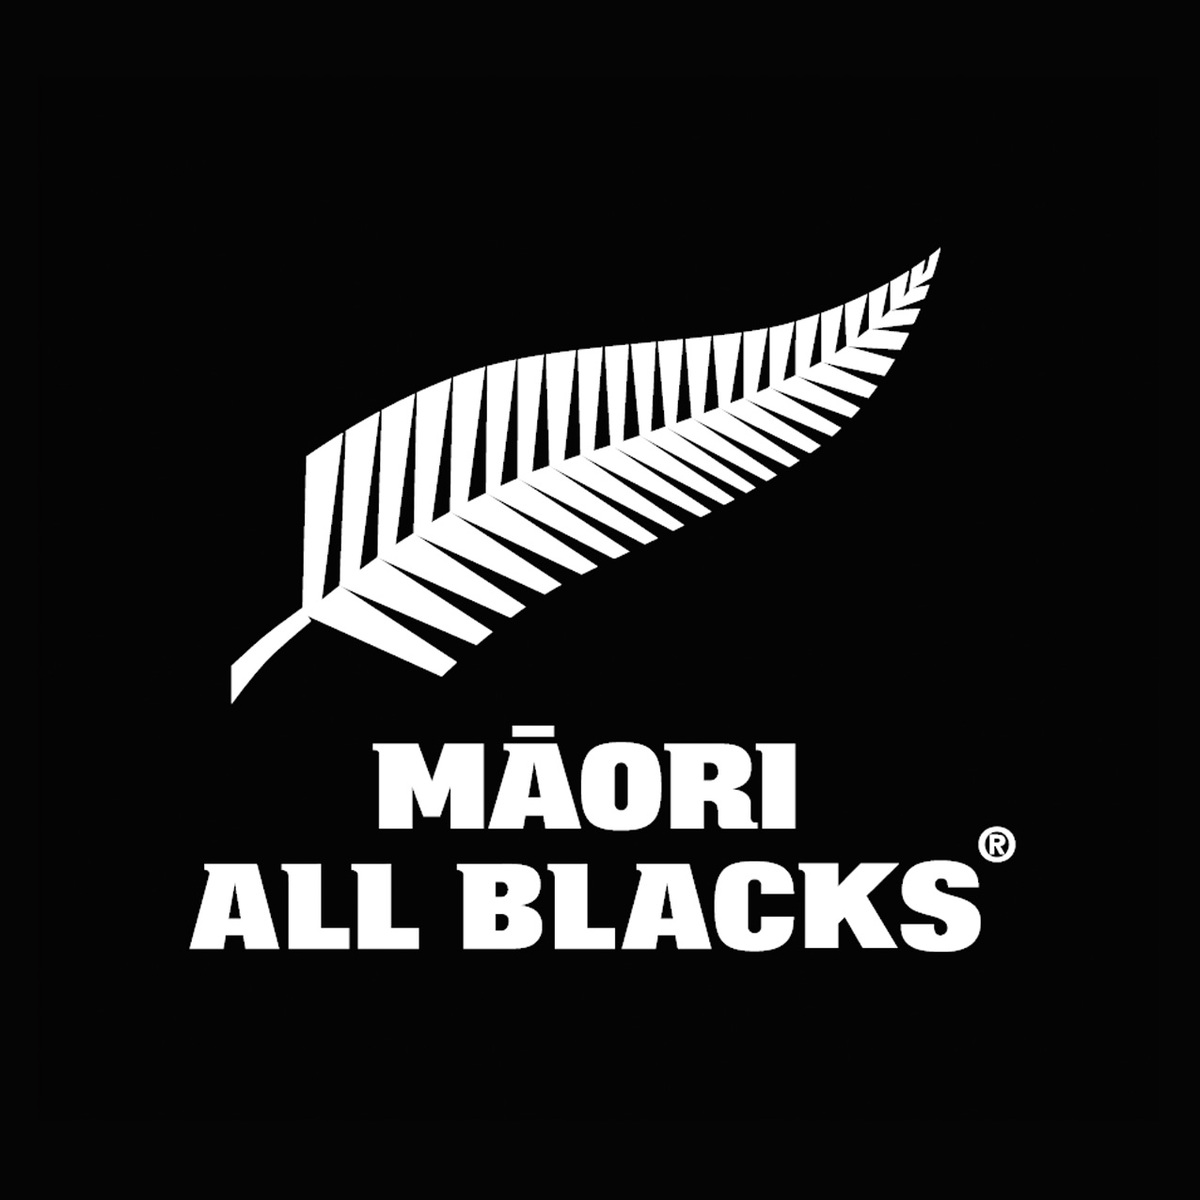 Maori All Blacks Hospitality